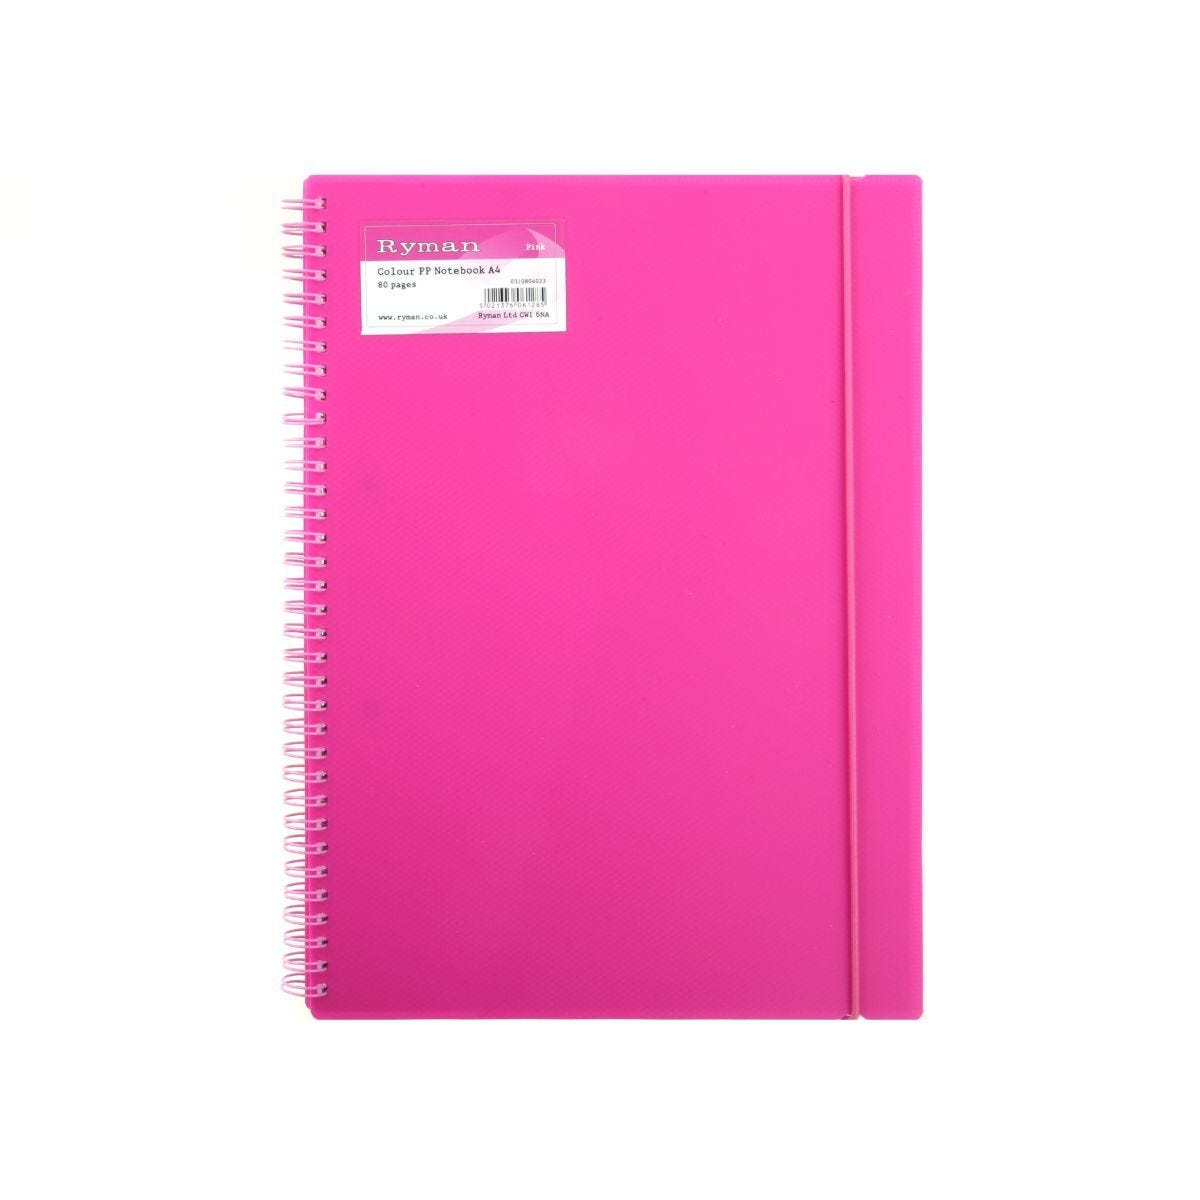 Ryman Colour Polypropylene Notebook A4 160 Pages 80 Sheets Pink